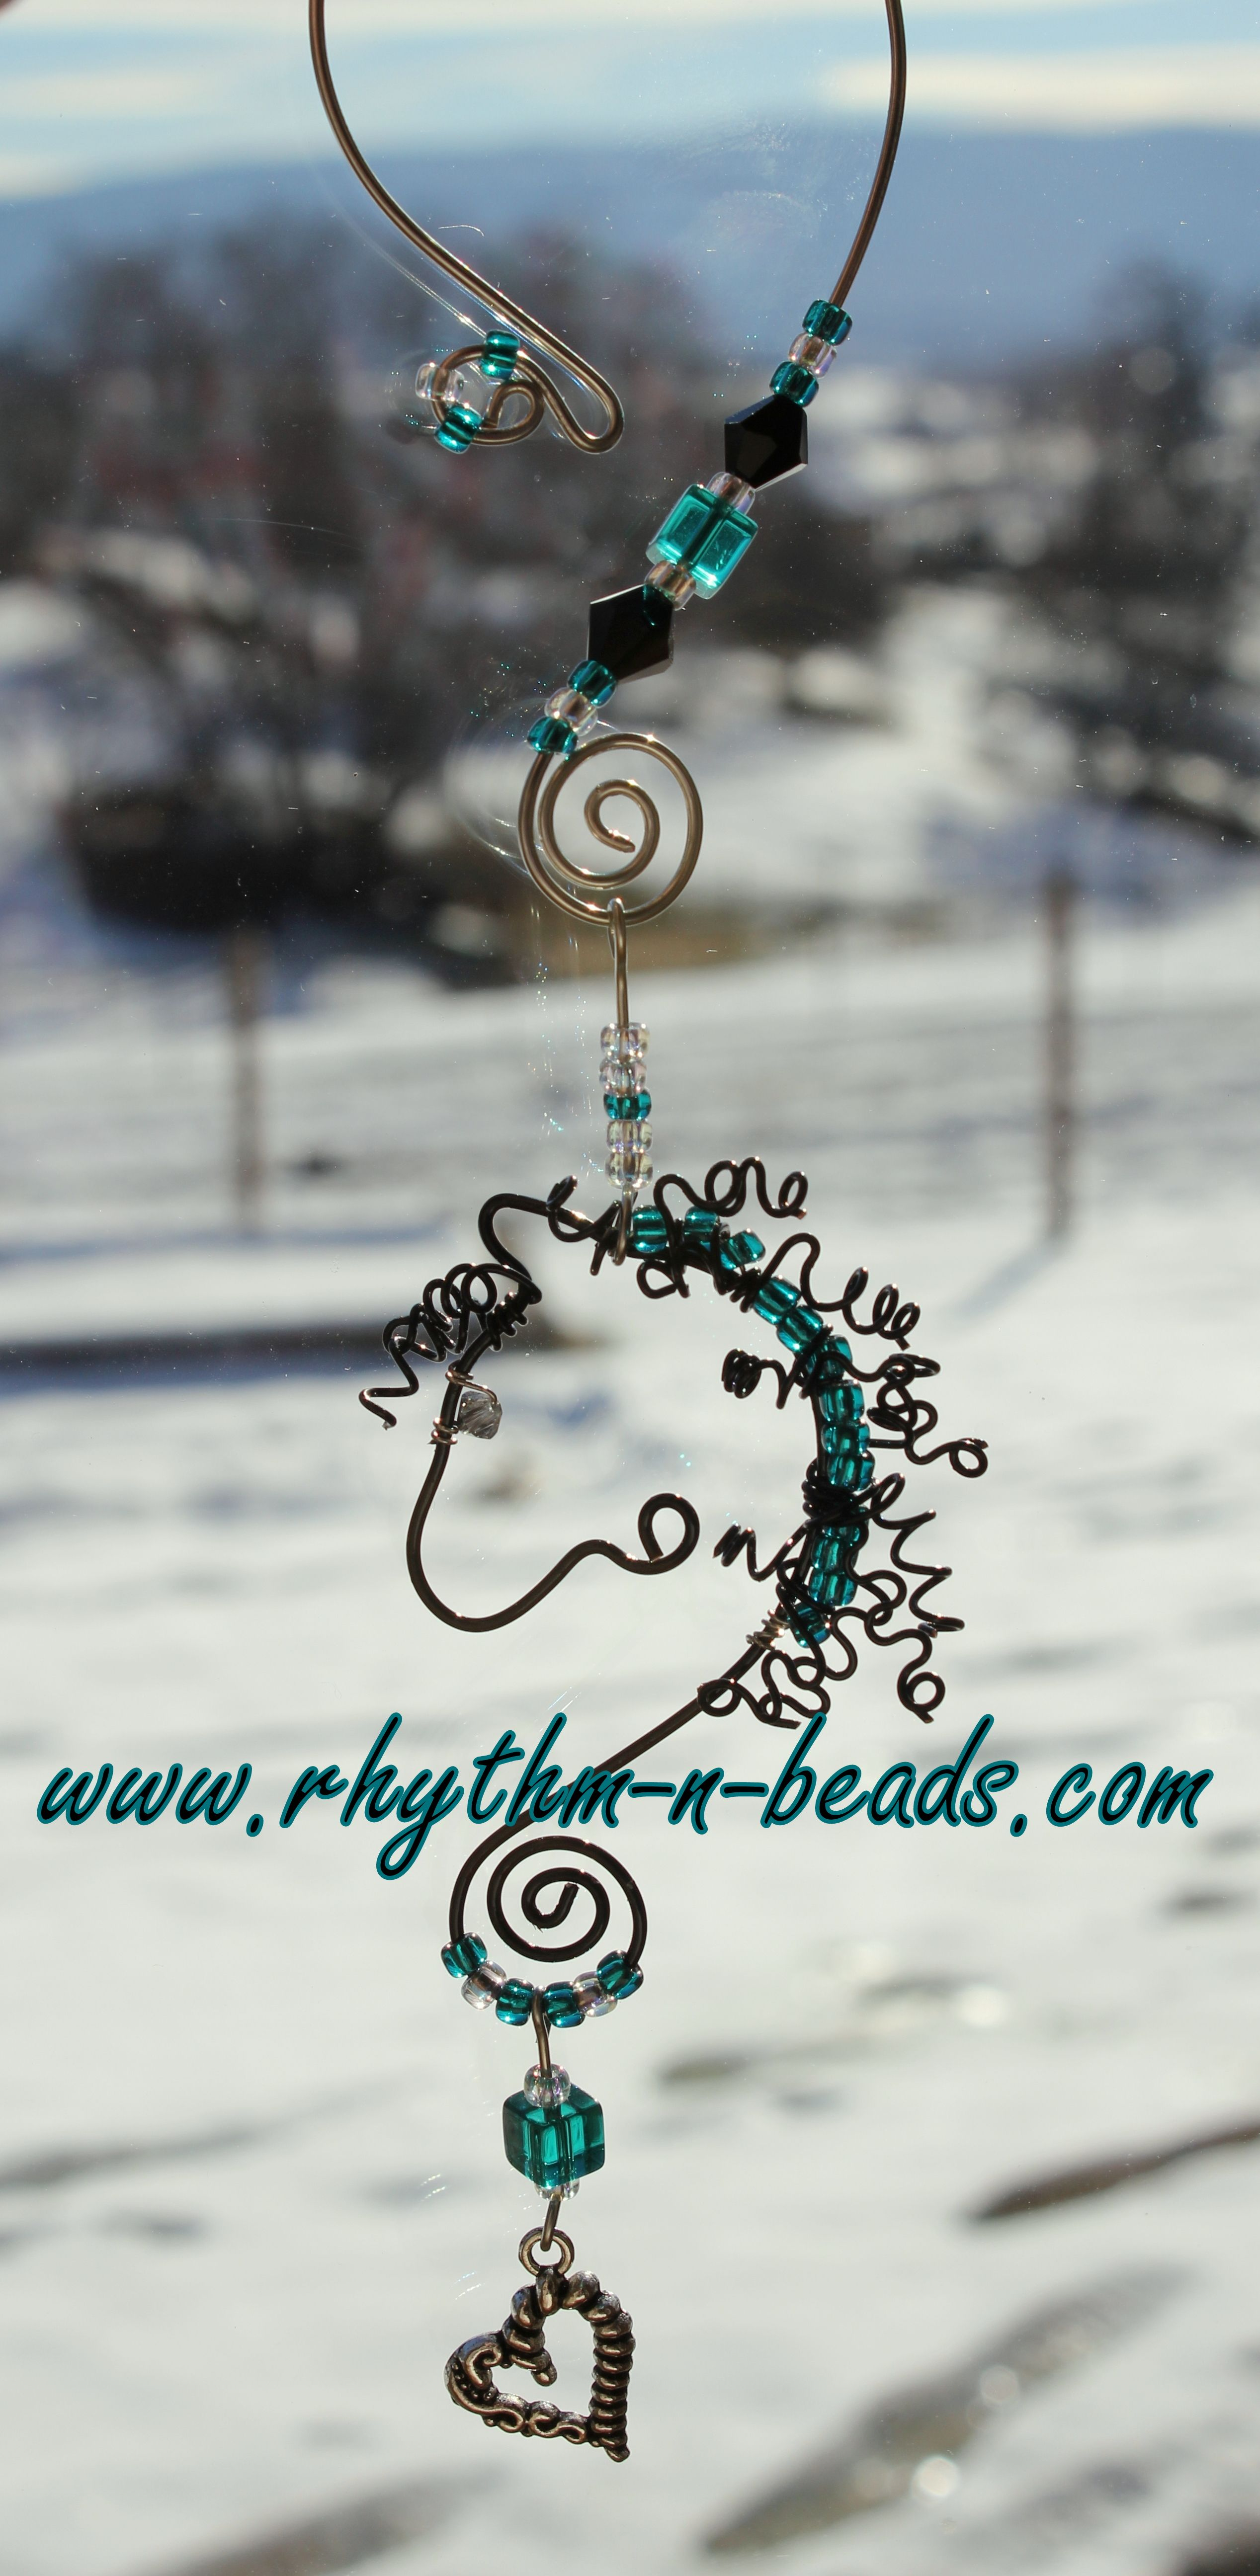 Wired Whinnies SunJewels ~ by Rhythm-n-Beads TM are whimsical wire ...